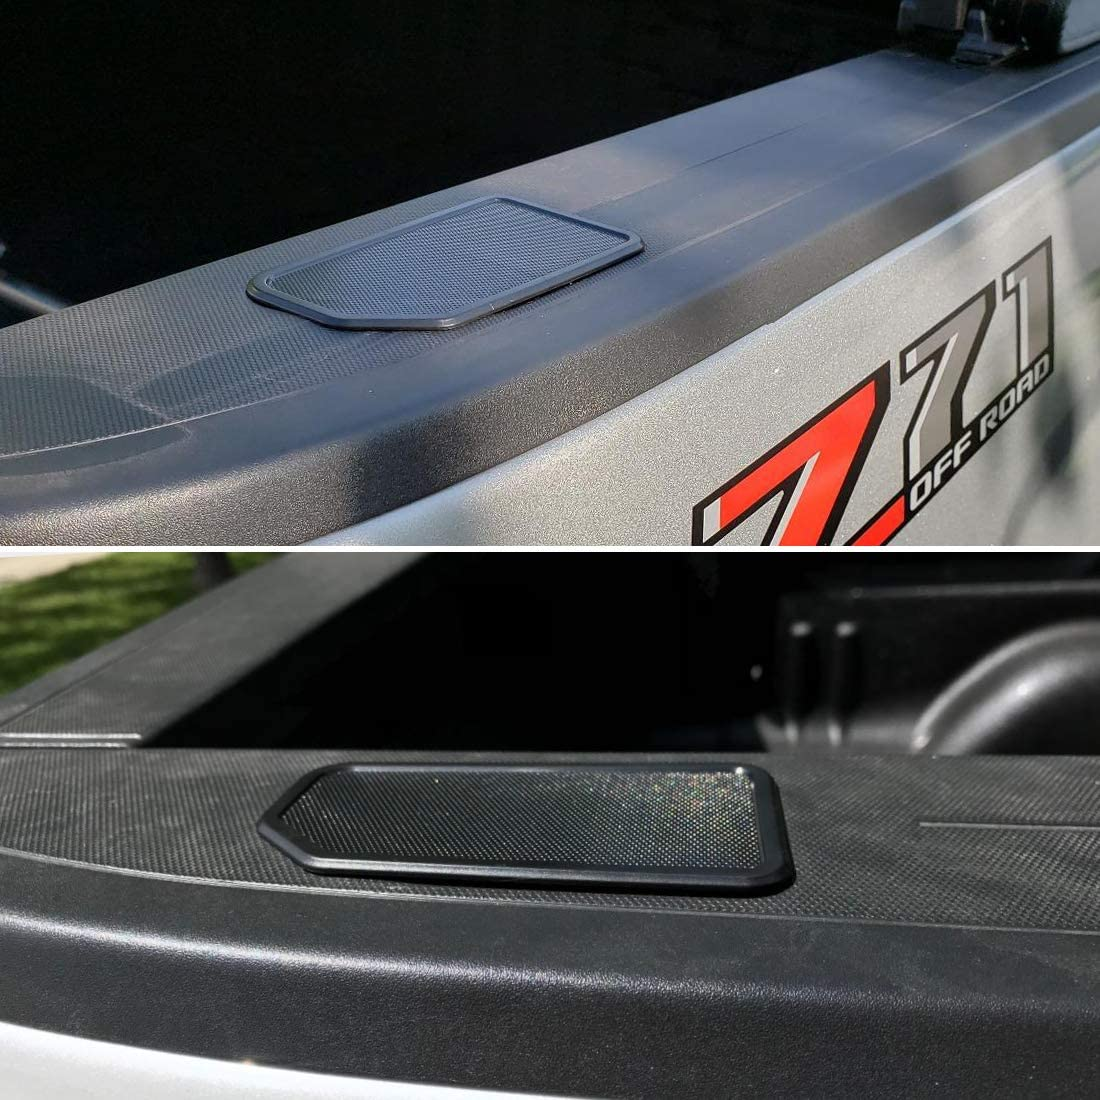 Ansite Truck Bed Rail Stake Pocket Covers for 2014-2018 Chevy Silverado /& GMC Sierra Odd Shaped Holes